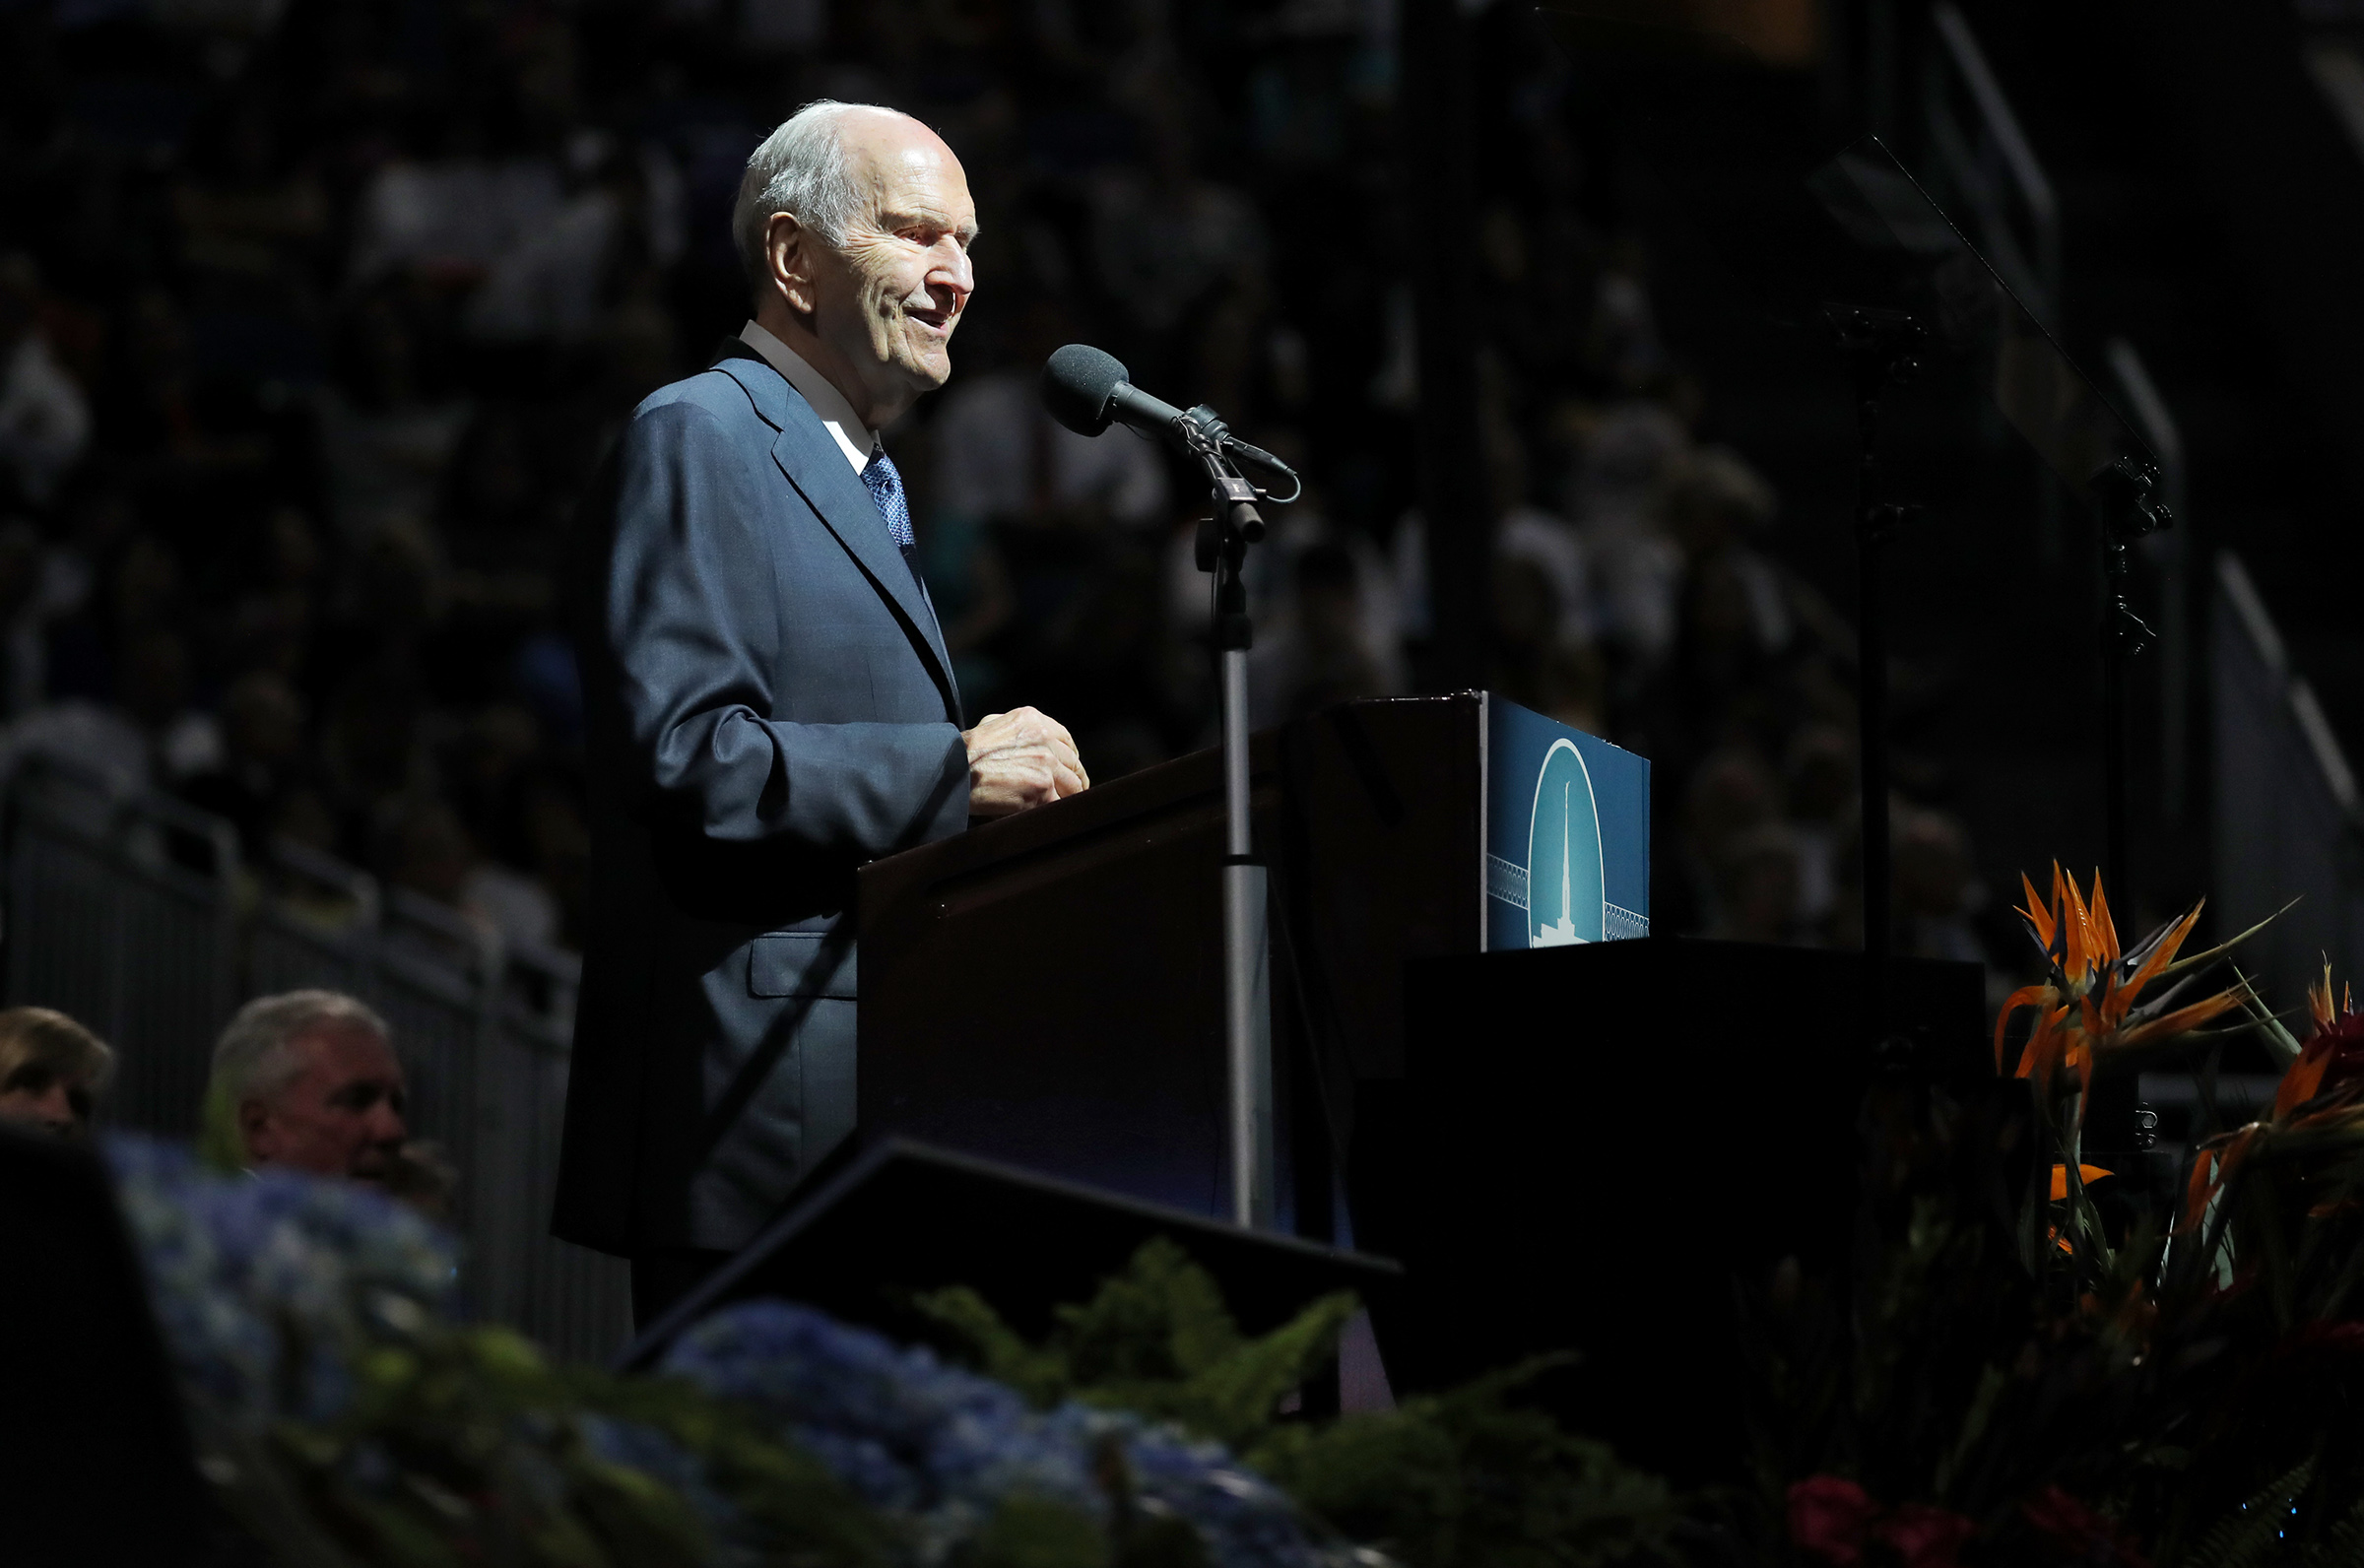 President Russell M. Nelson speaks during at a devotional at the Amway Center in Orlando, Florida, on Sunday, June 9, 2019.